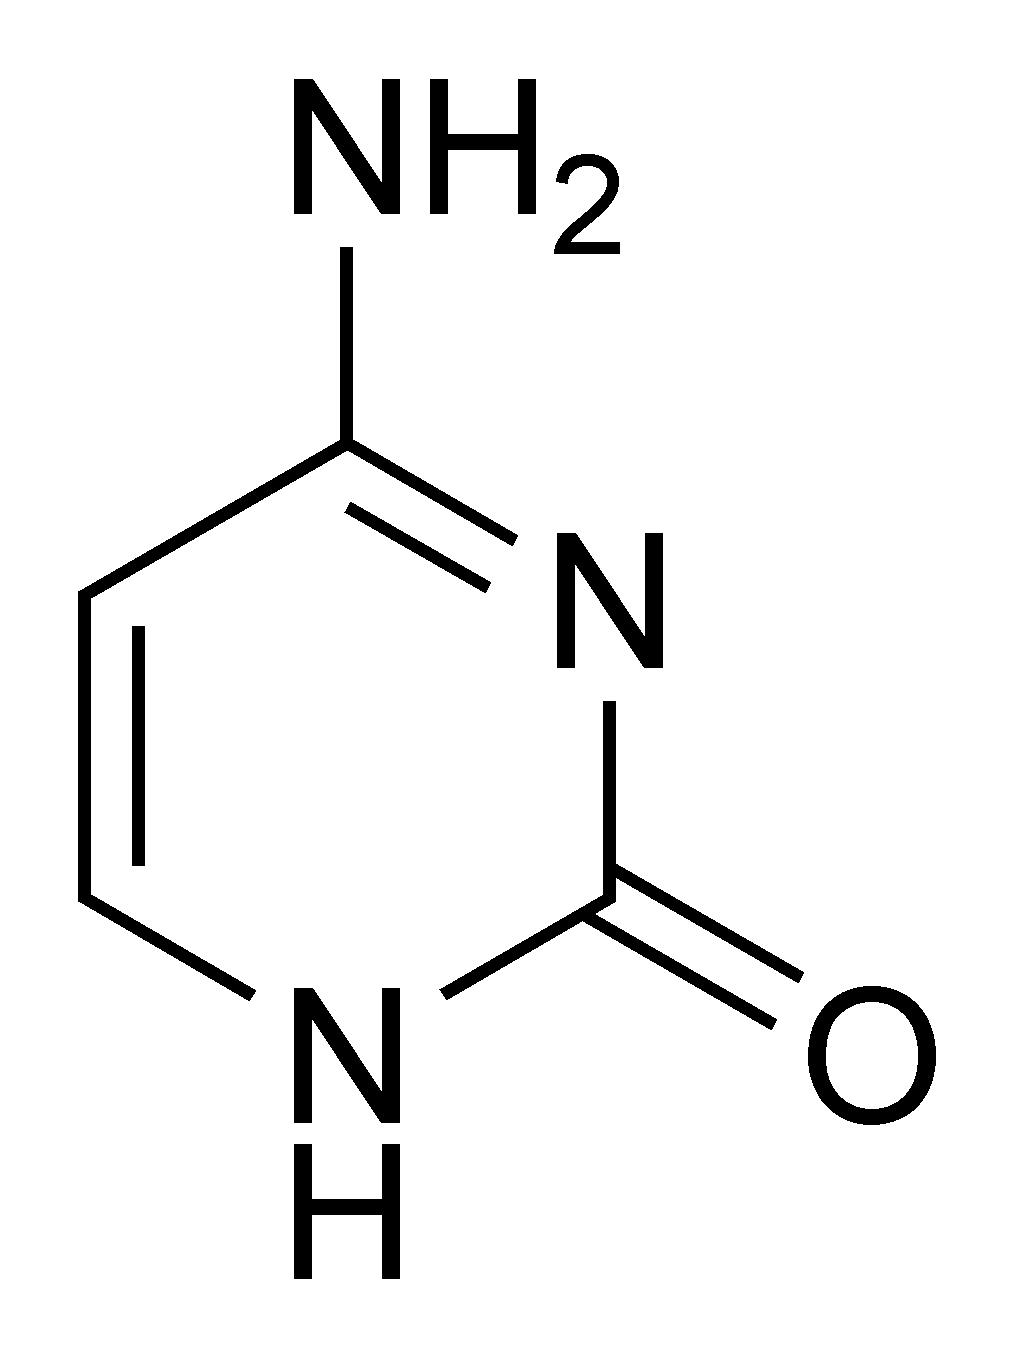 jpg transparent stock Cytosine